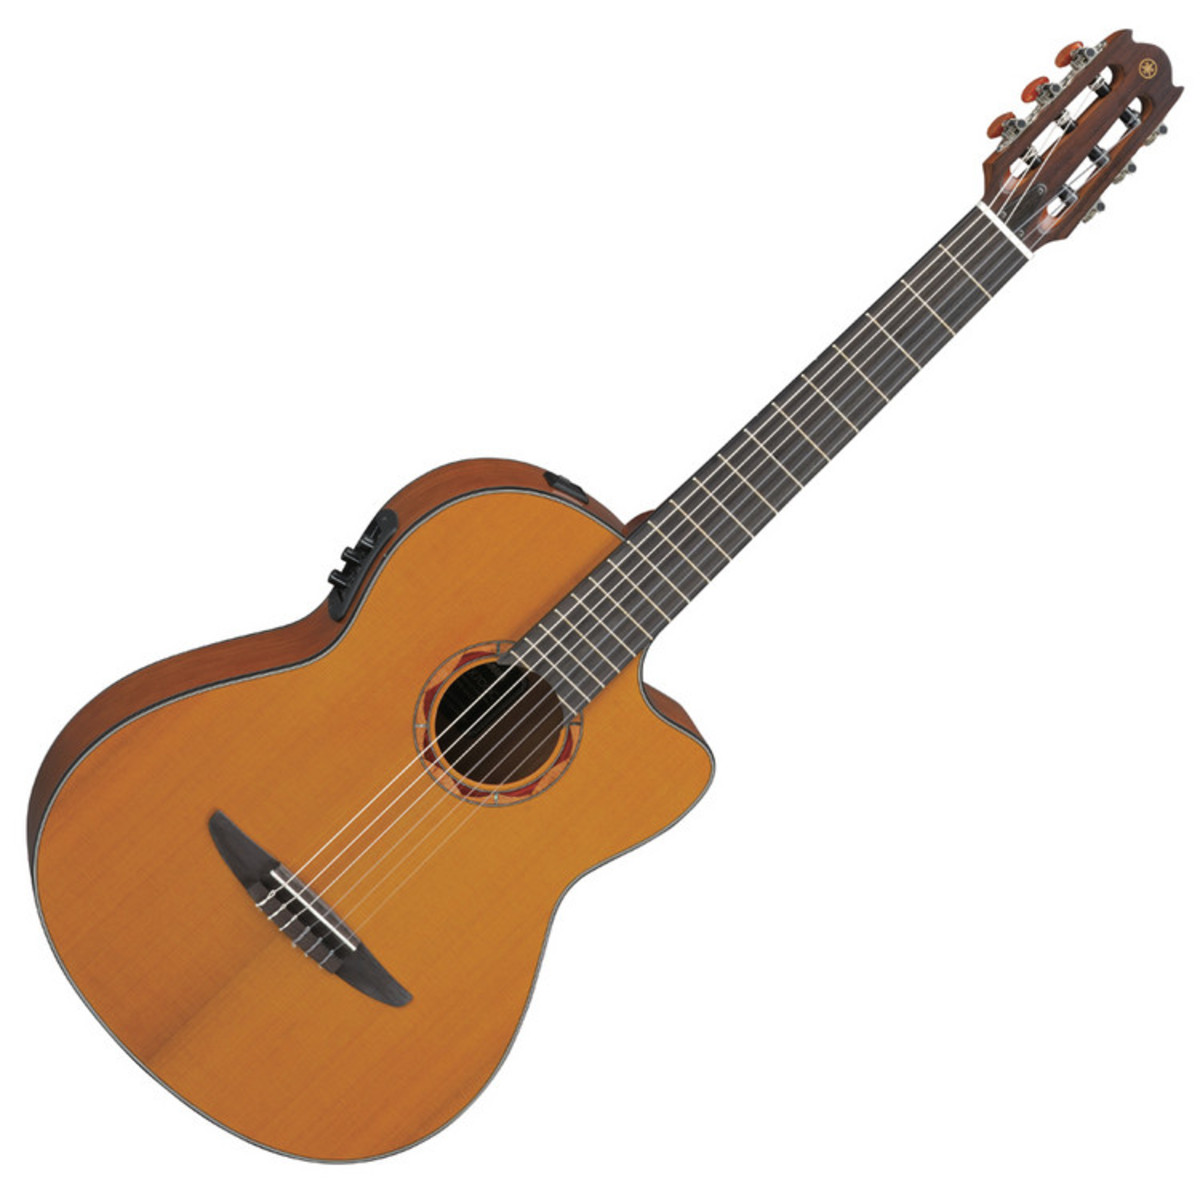 yamaha ncx700c classical guitar natural at gear4music. Black Bedroom Furniture Sets. Home Design Ideas